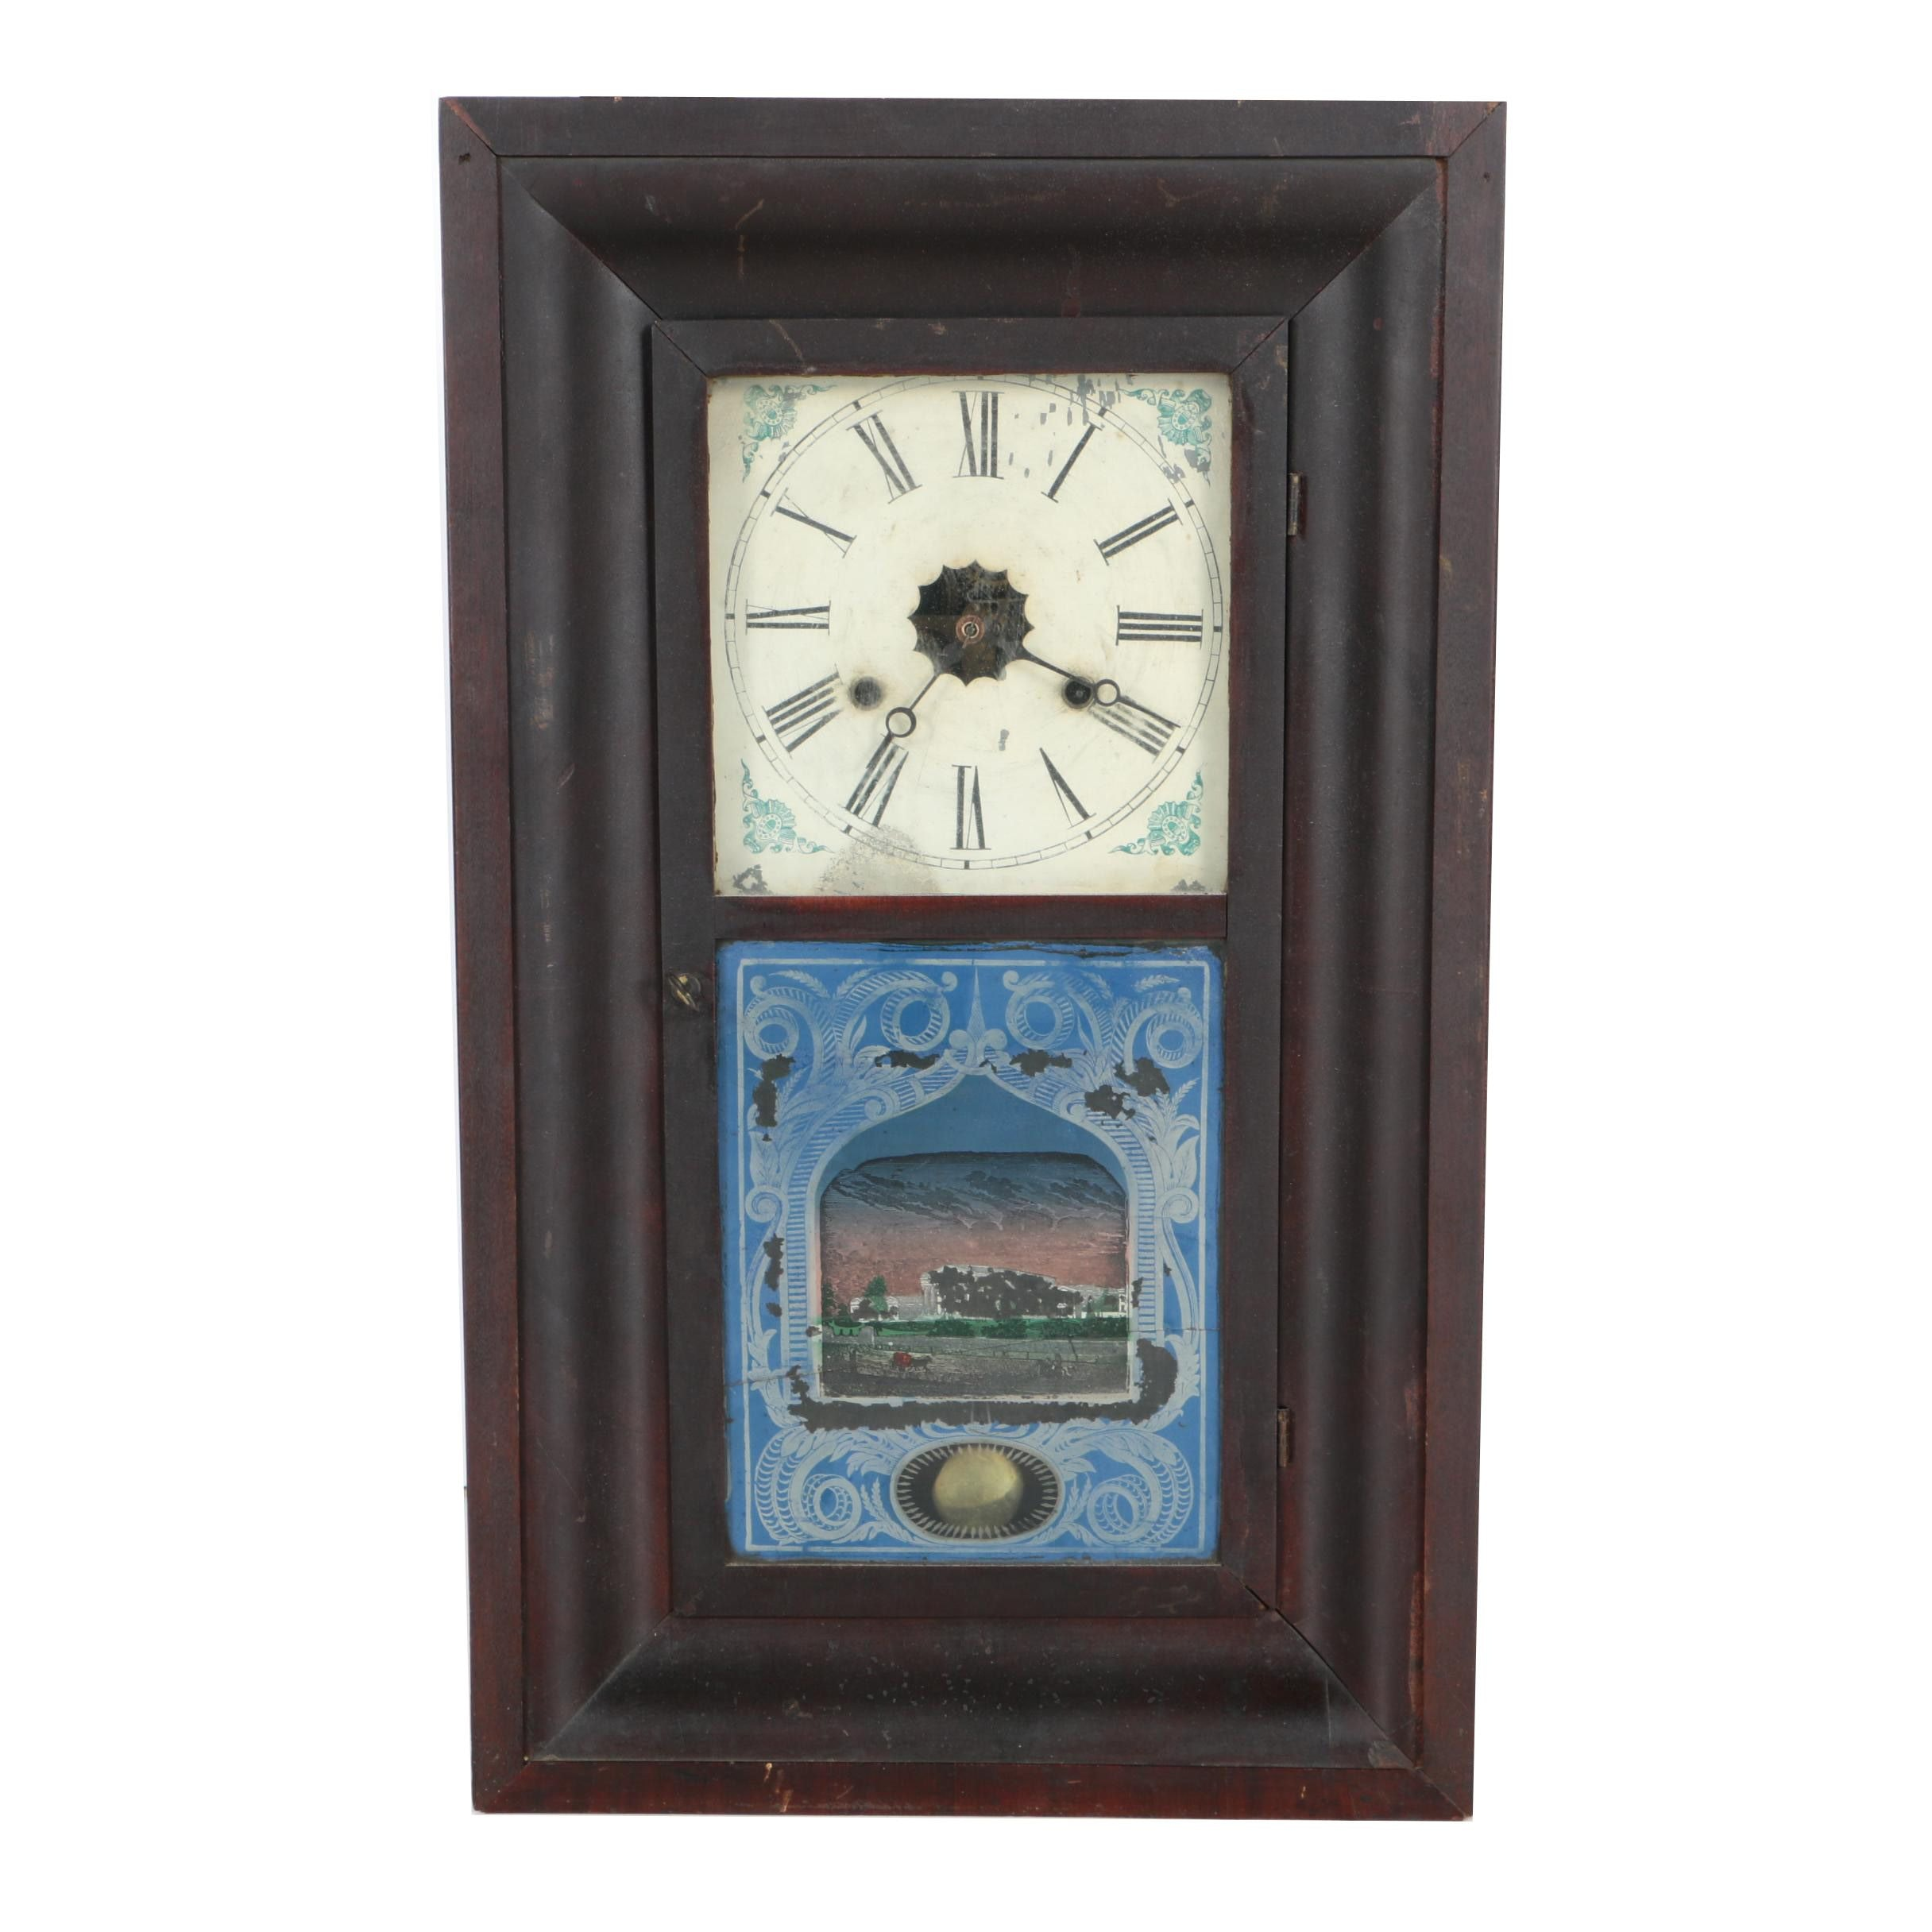 19th Century Chauncey Jerome Ogee Mantel Clock